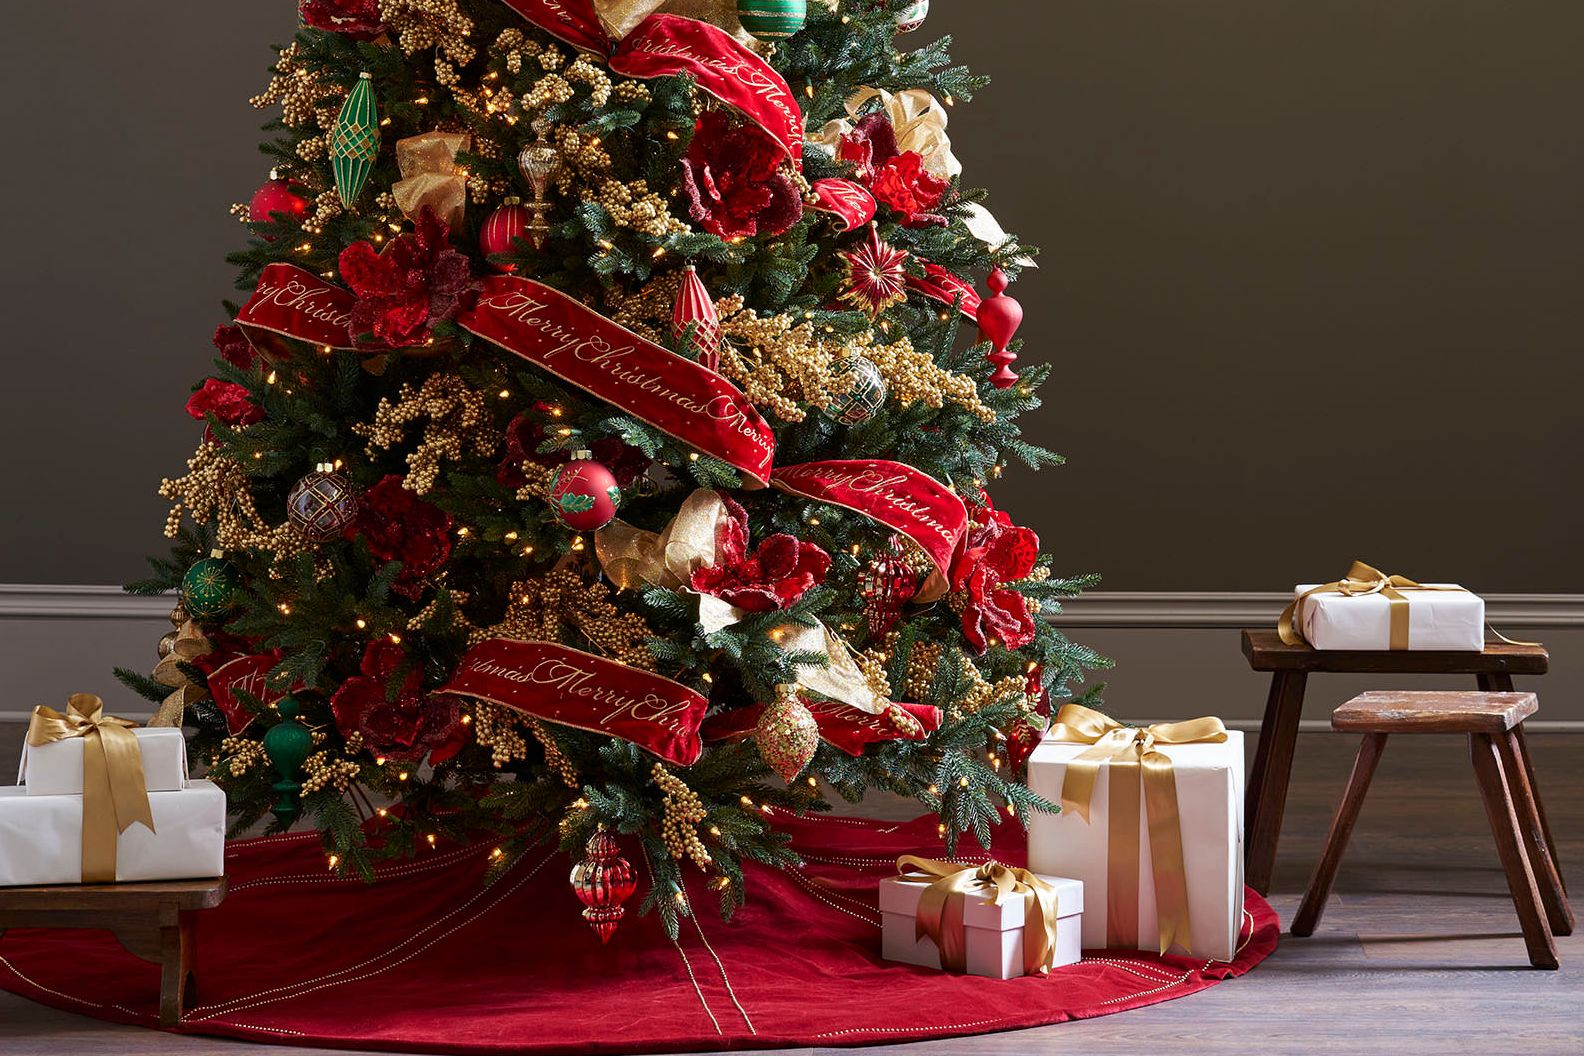 realistic artificial Christmas tree with red and gold decorations